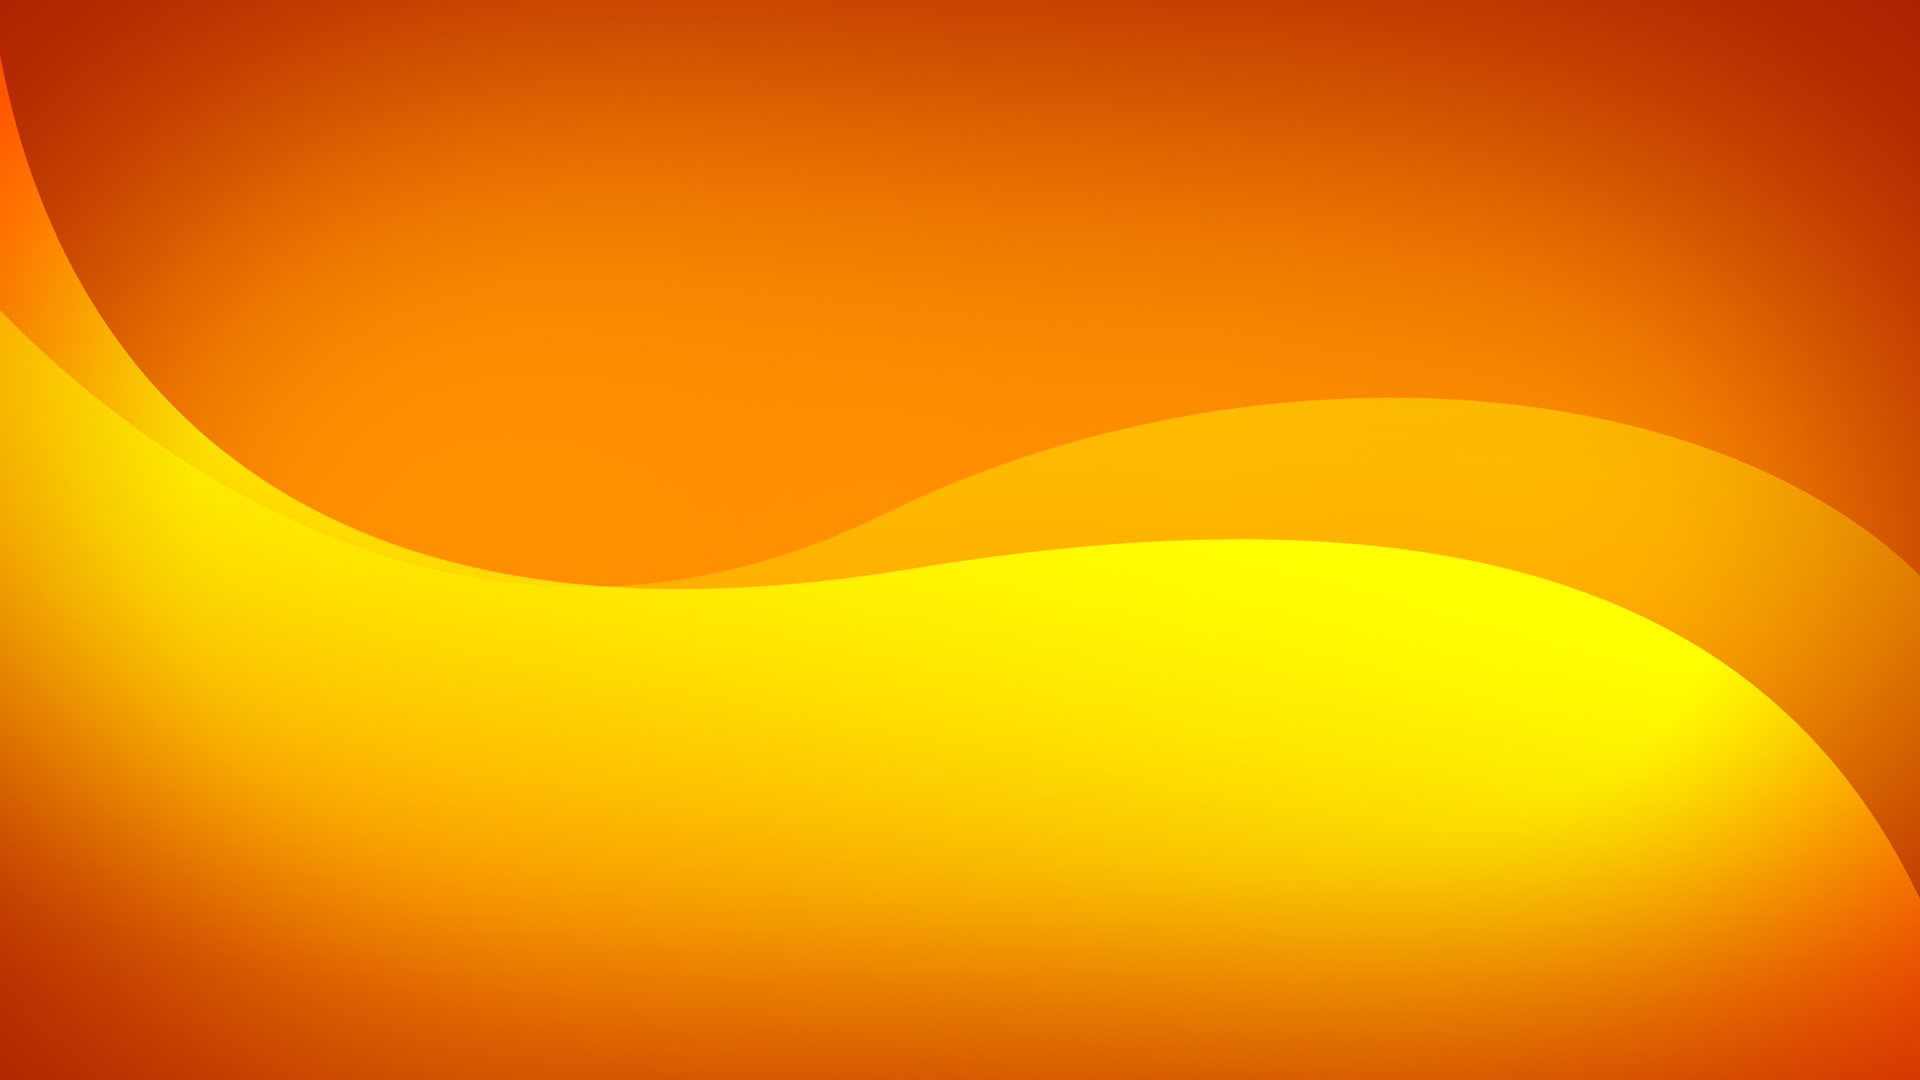 Orange Wallpaper   Orange Wallpaper 34512787 1920x1080